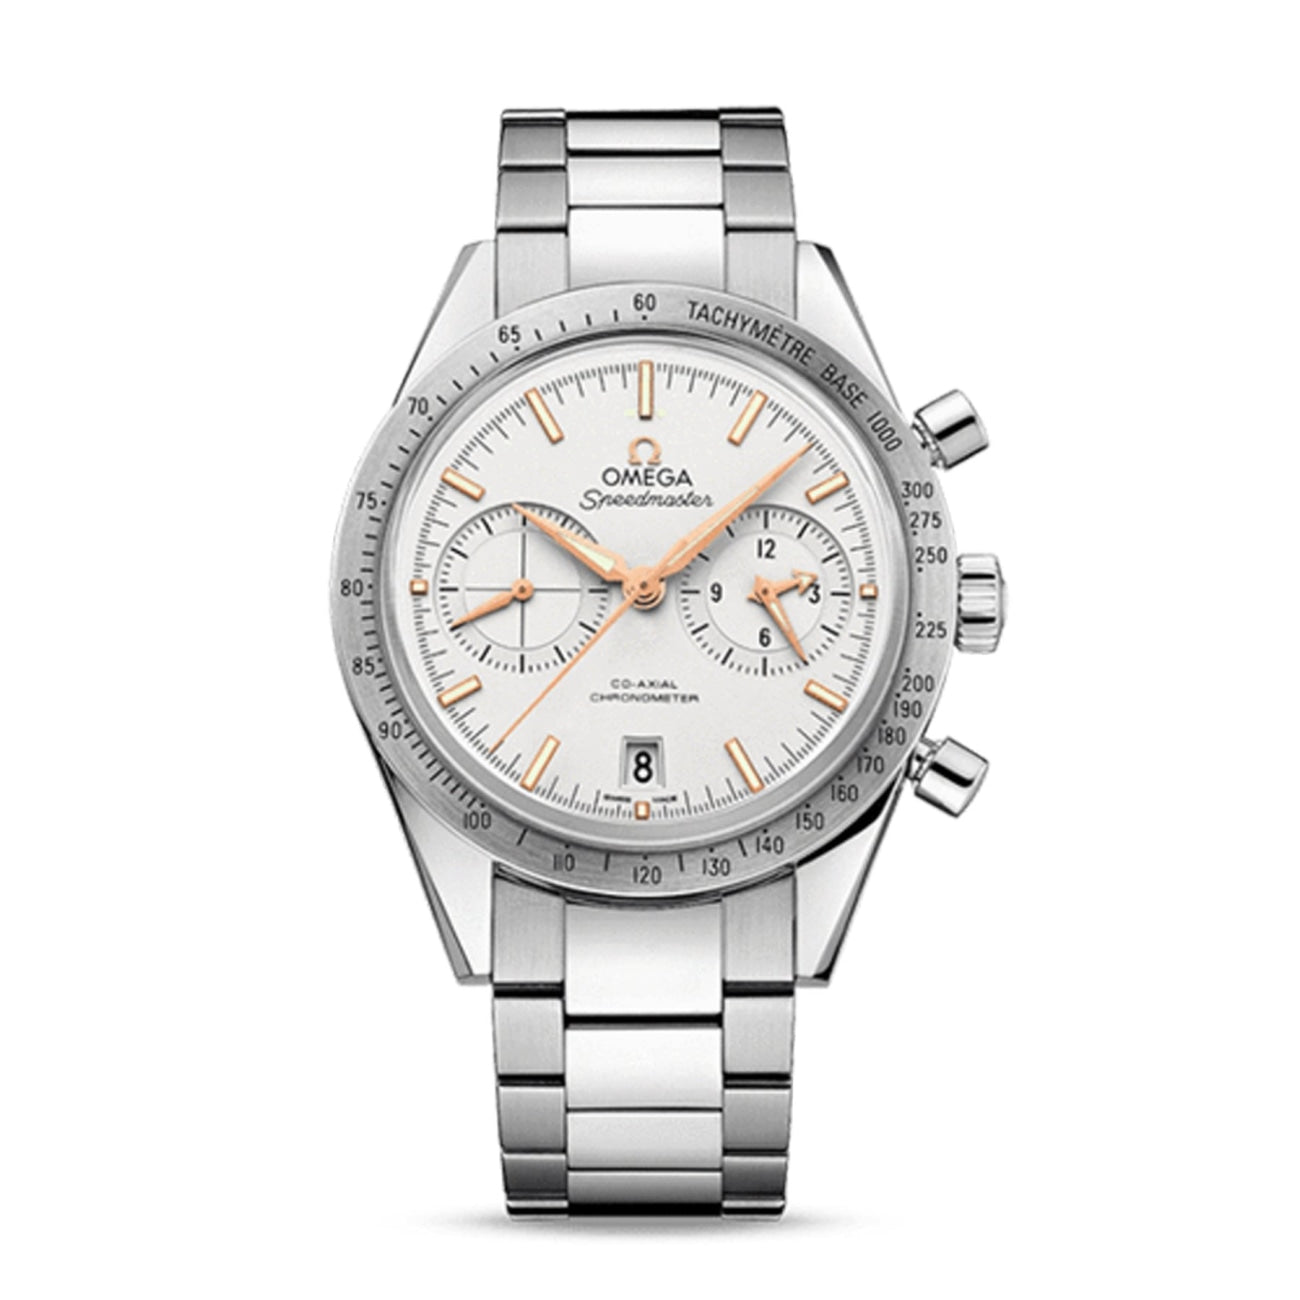 Omega Watches - Speedmaster Speedmaster 57 Omega Co-Axial Chronograph 41.5 Mm | Manfredi Jewels